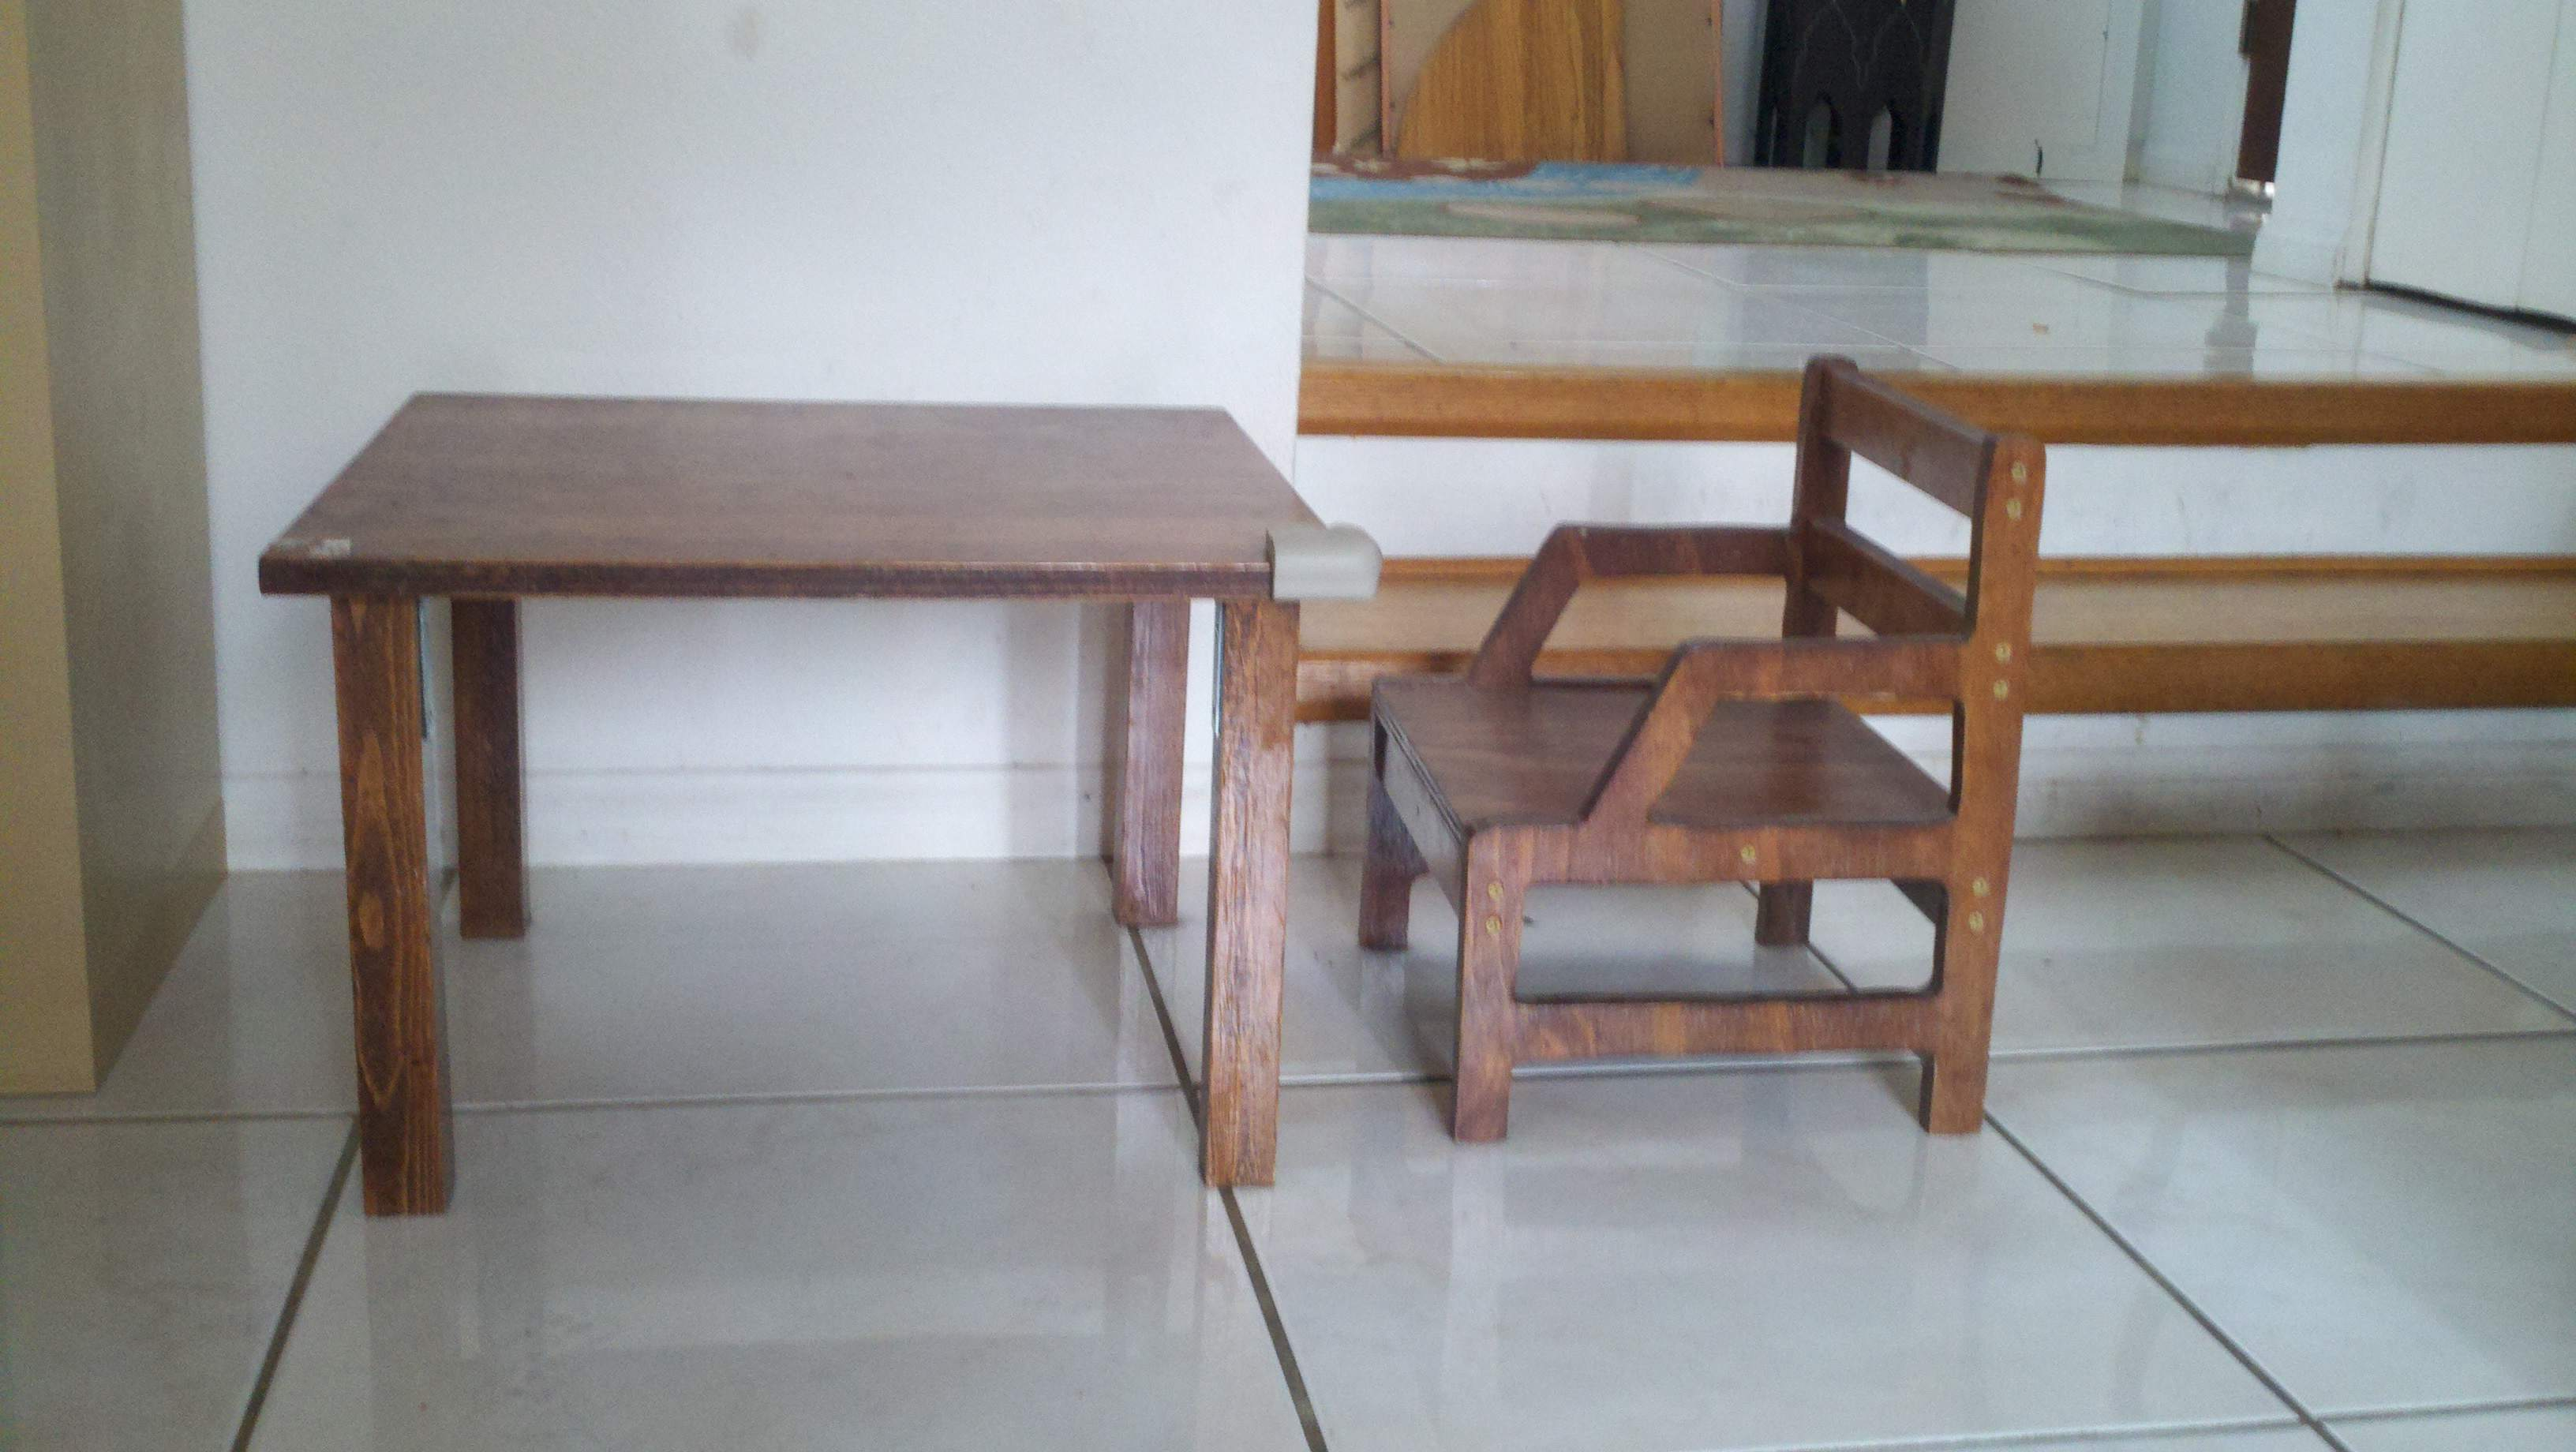 Weaning Chair And Table The Full Montessori